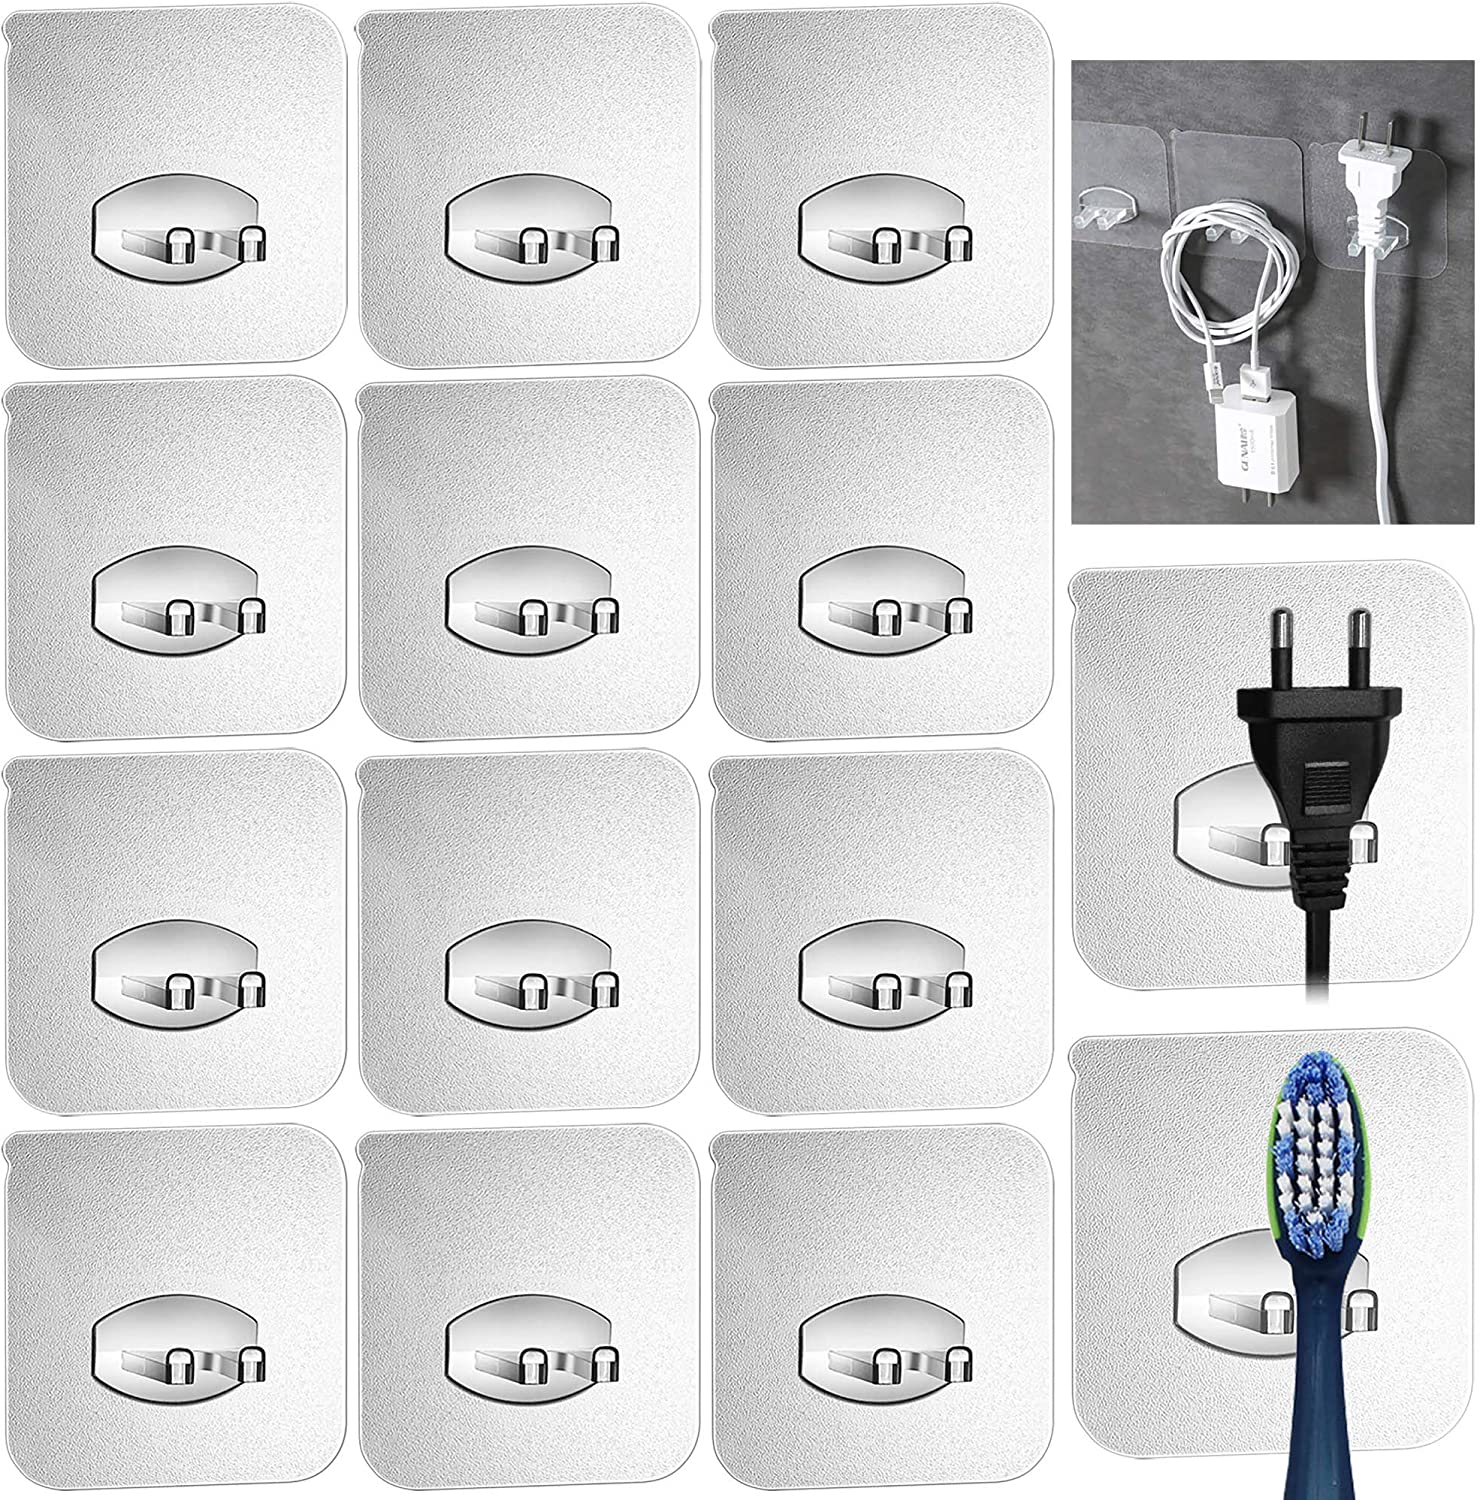 12pcs Adhesive Toothbrush Holder Wall Mounted,Multi-Function Wall Storage Hook,Transparent Seamless Reusable,Power Plug Socket Holder,Razor Holder,Home Office Bathroom Wall Hanger for Keys,Phone